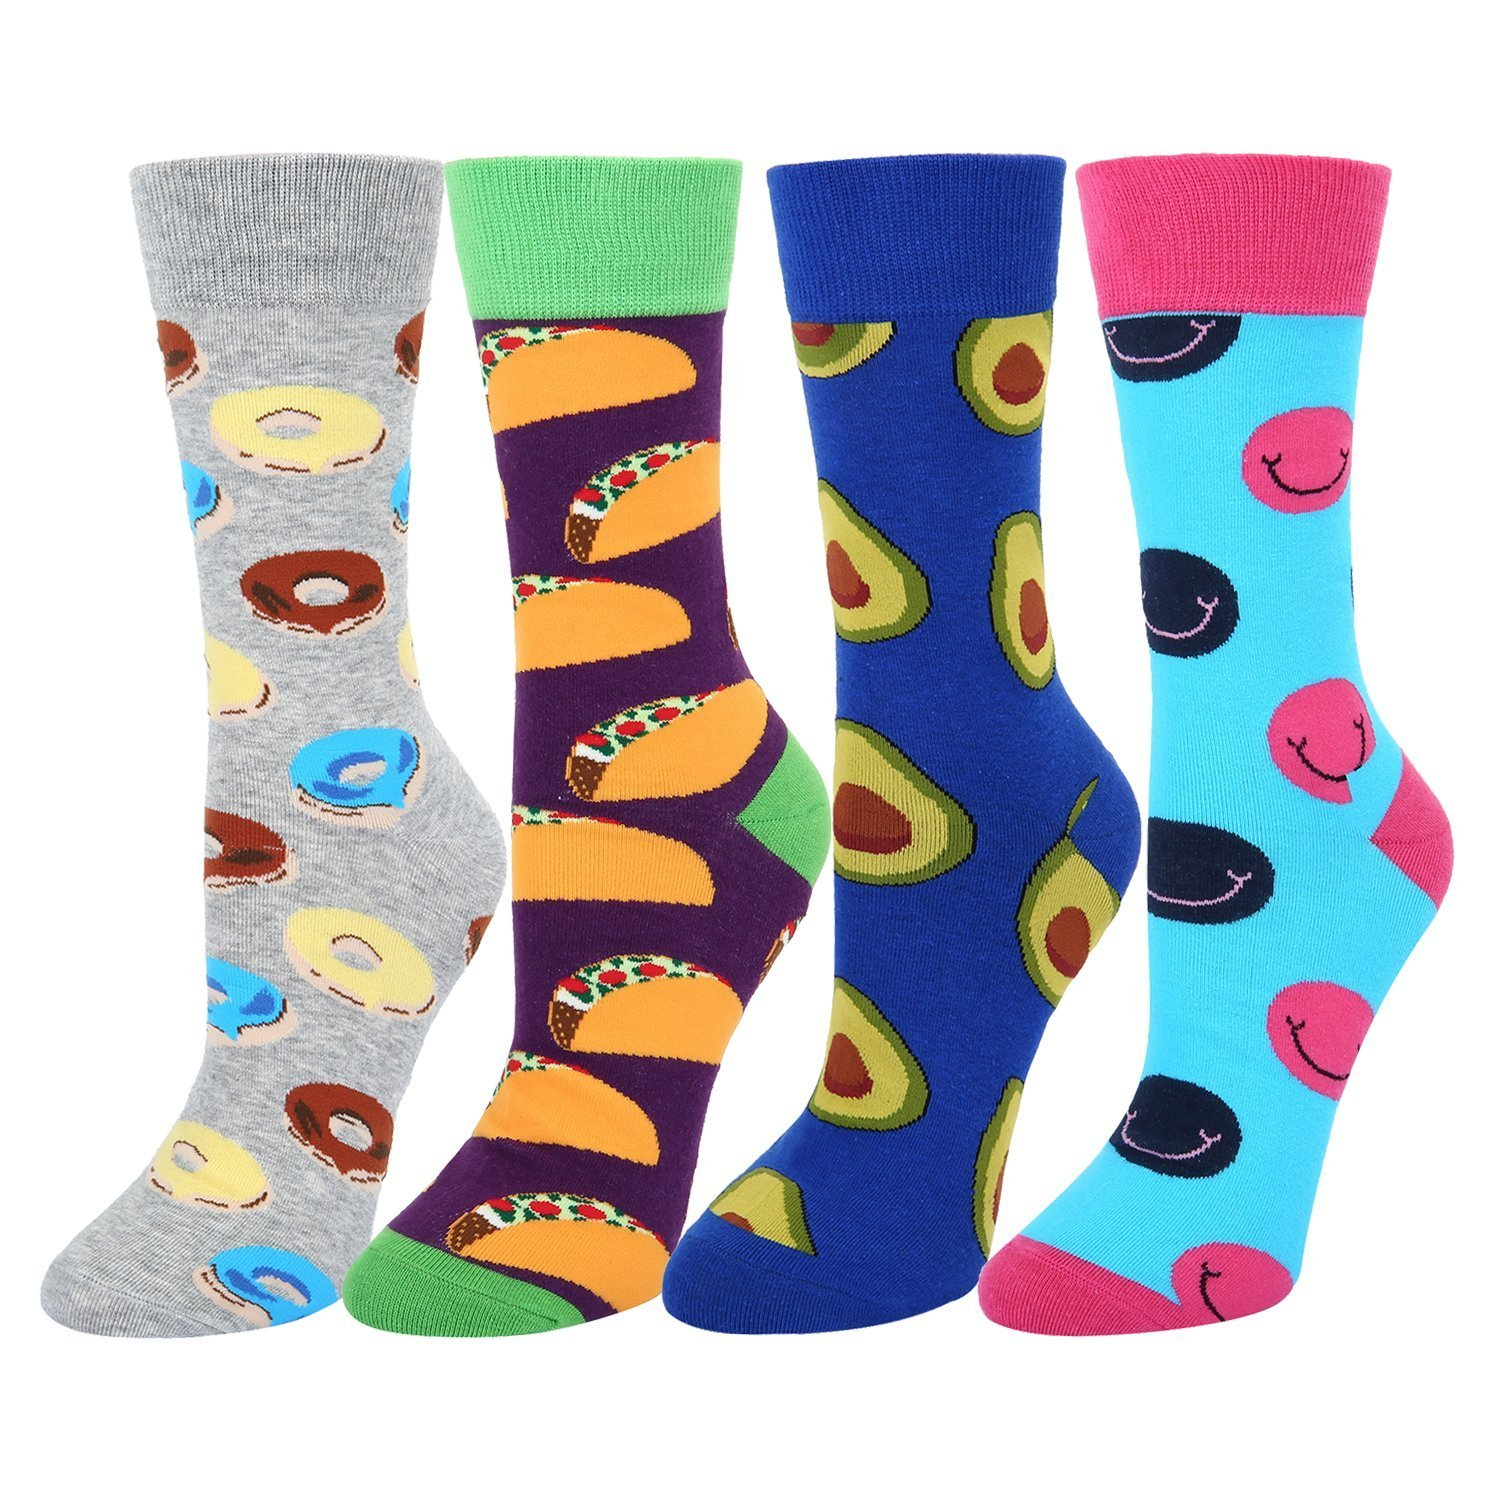 4 Pack Colorful Novelty Crazy Food Crew Socks,Donuts Tacos Avocado Smile Face Dress Socks for Women Girls